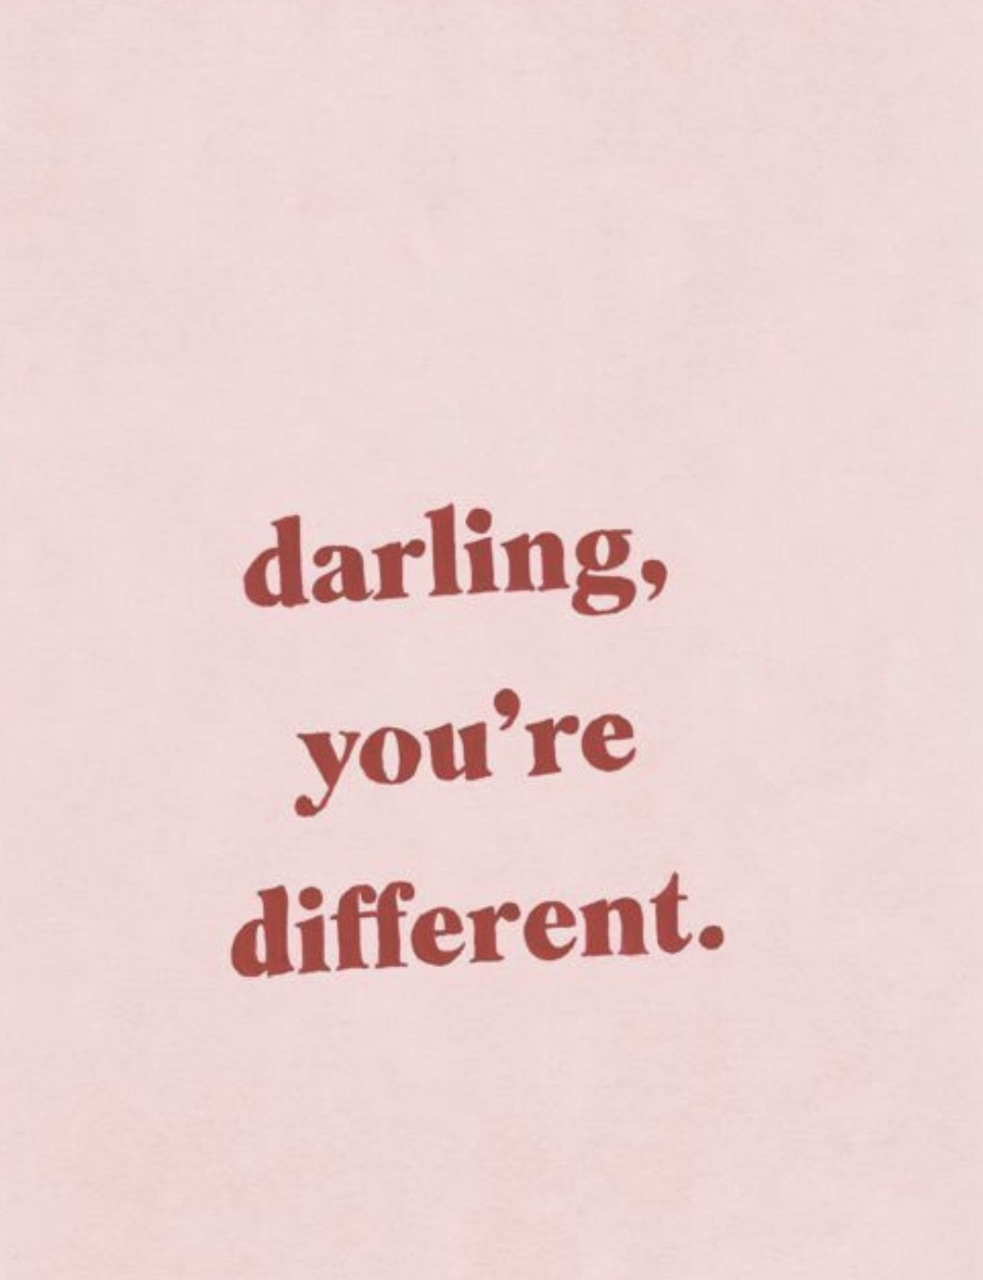 darling, different, hipster and love